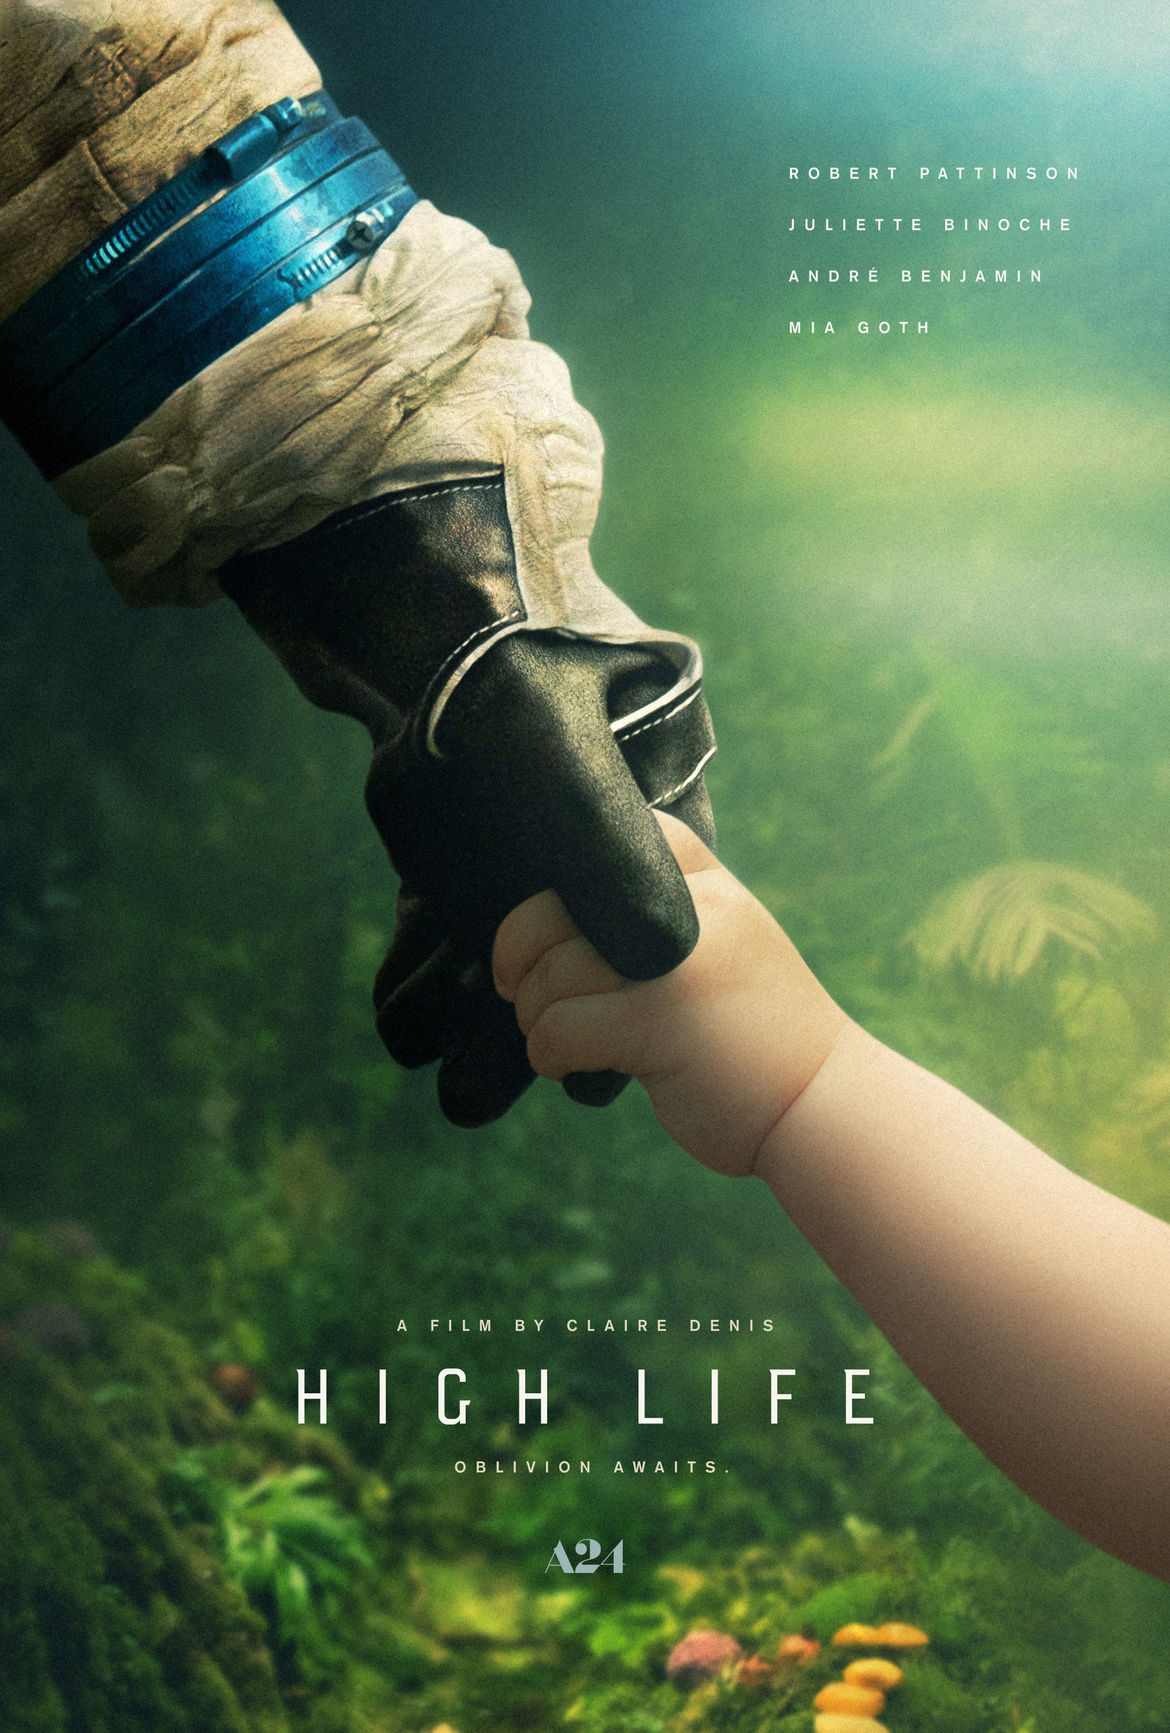 High Life Movie Poster A24